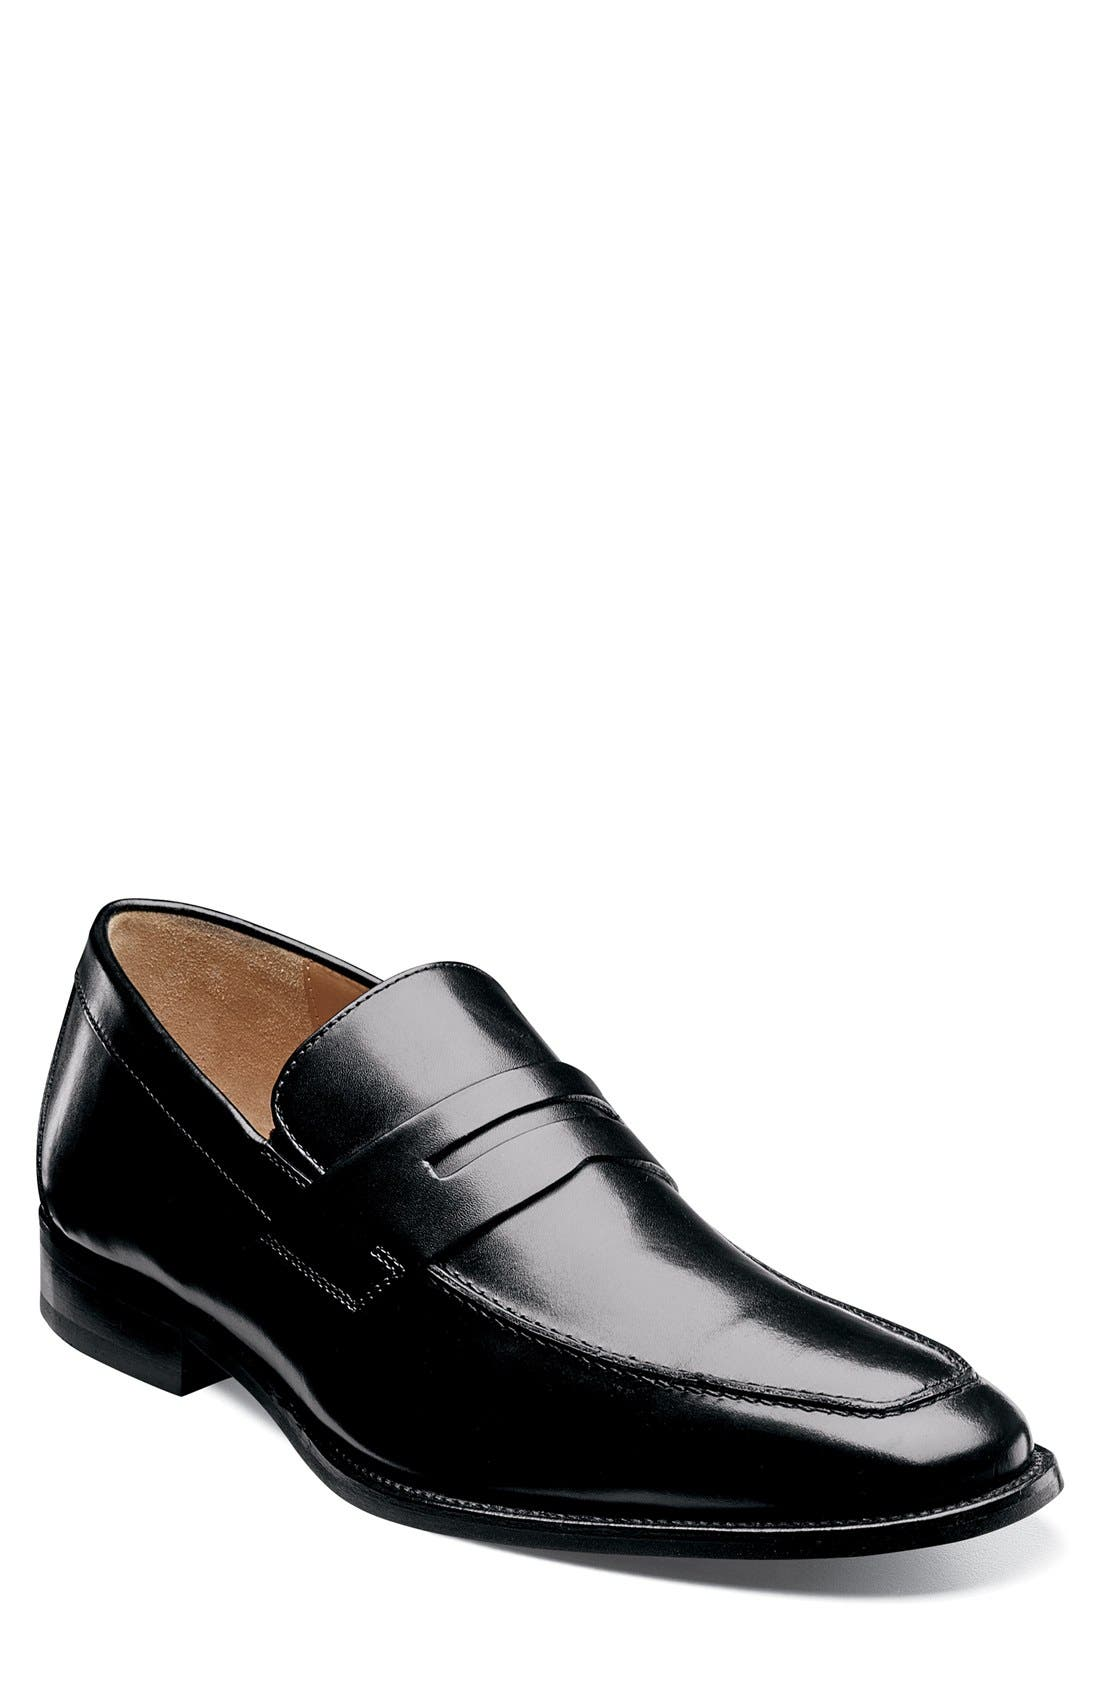 'Sabato' Penny Loafer,                             Main thumbnail 1, color,